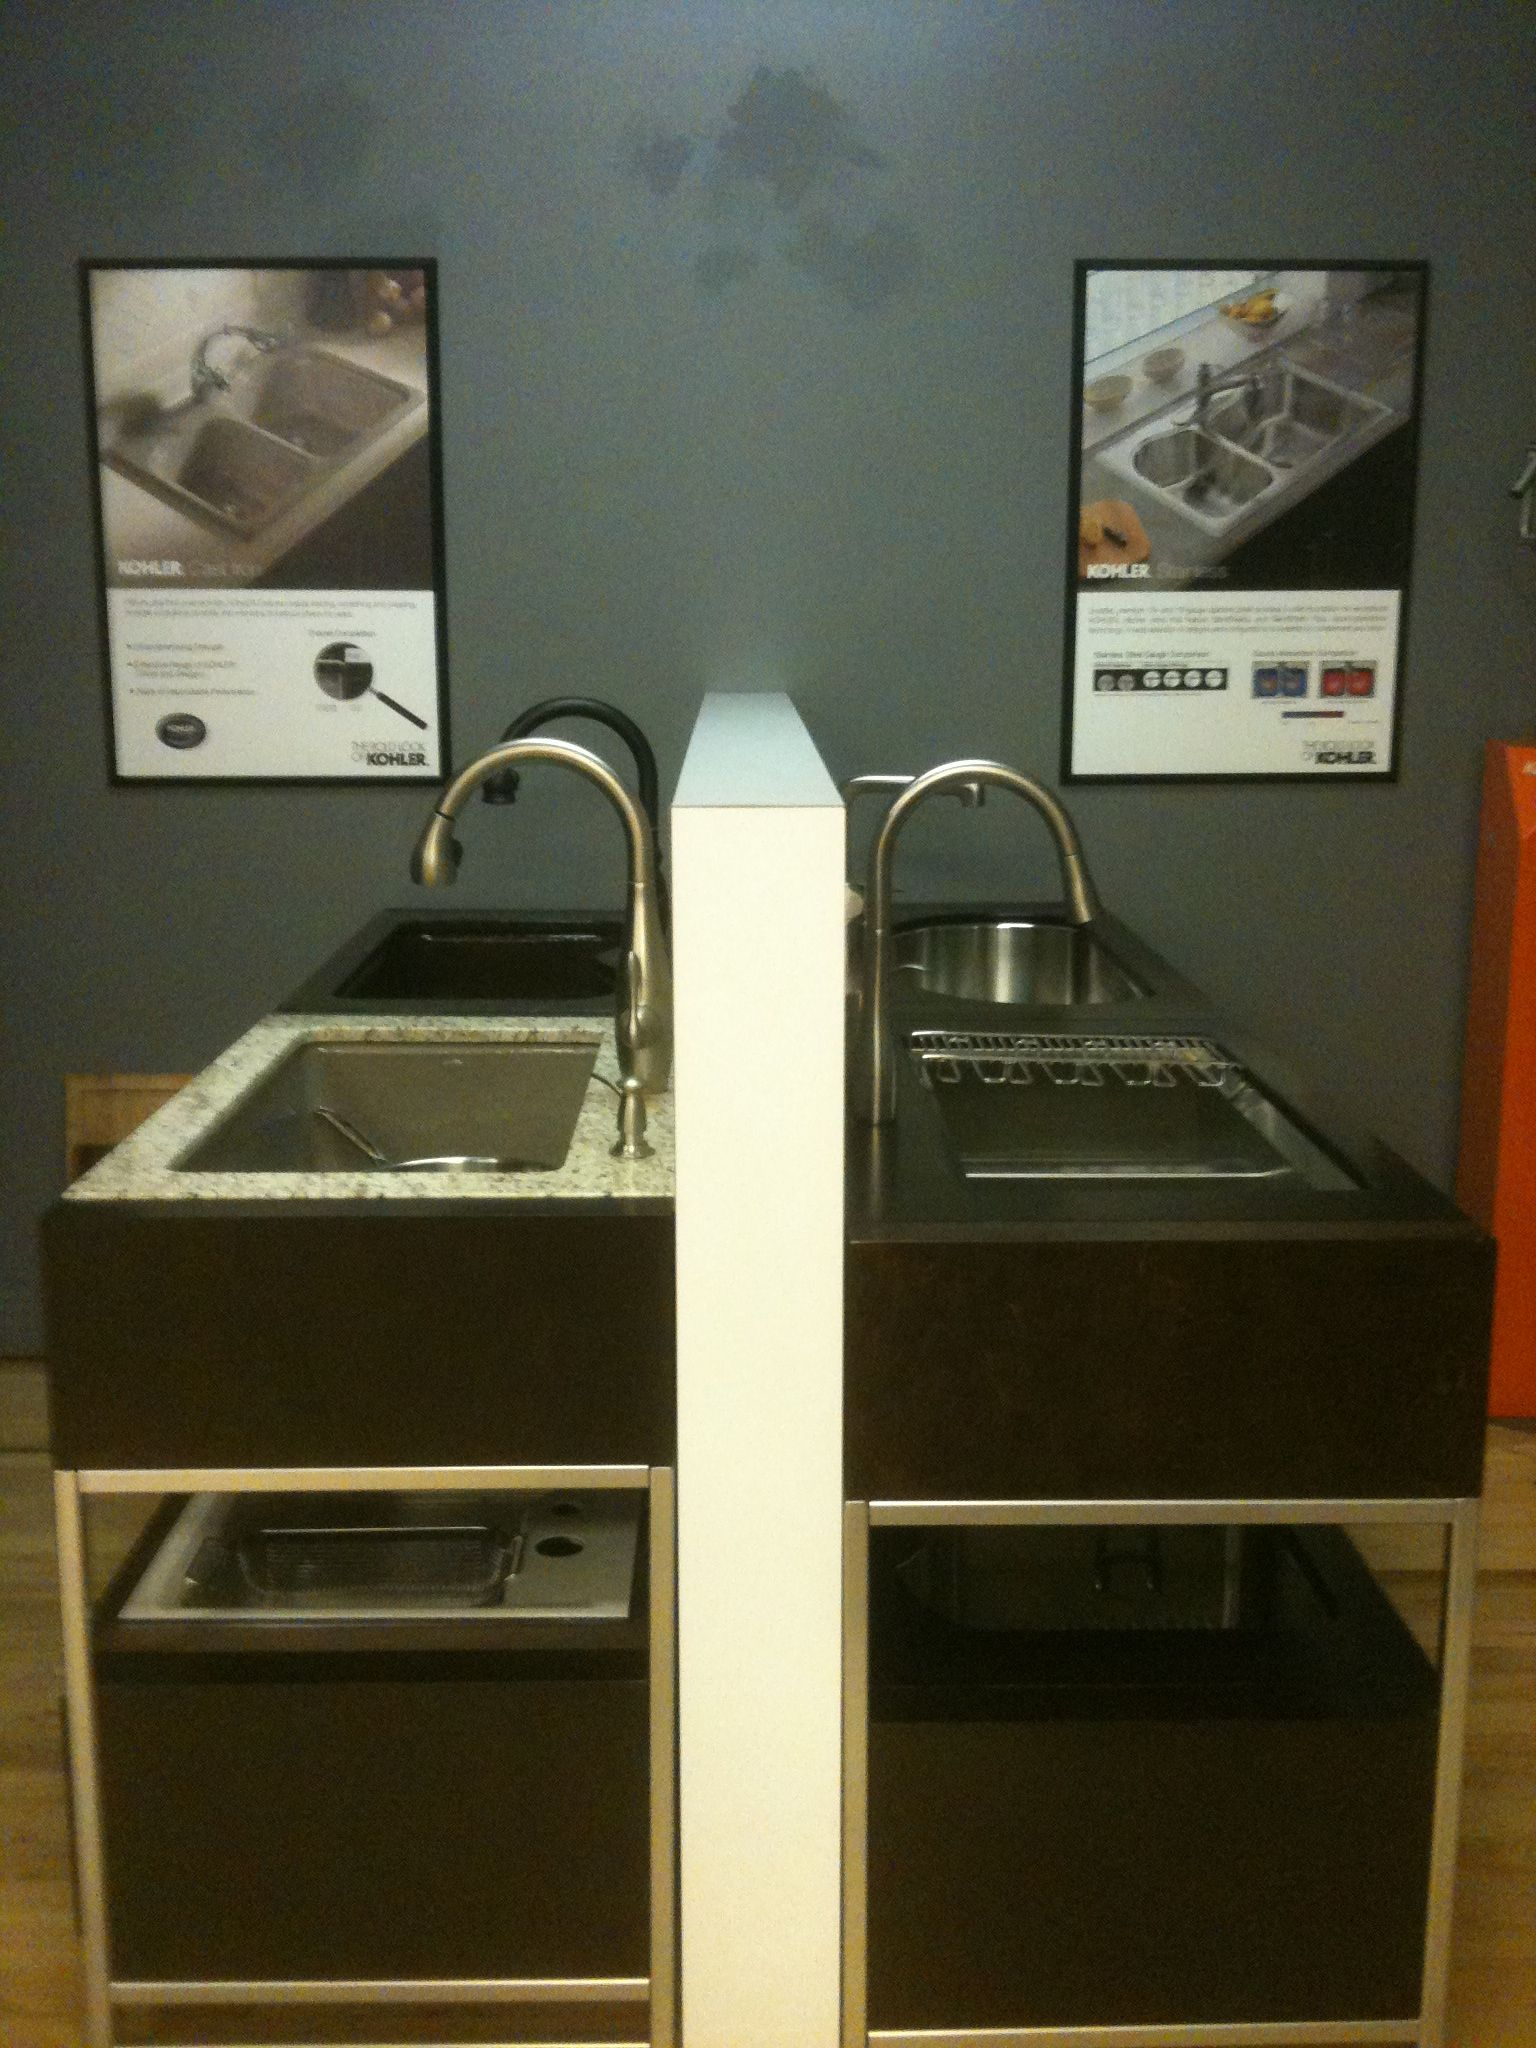 Bathroom Showrooms Denver kohler kitchen sink displays | our denver showroom | pinterest